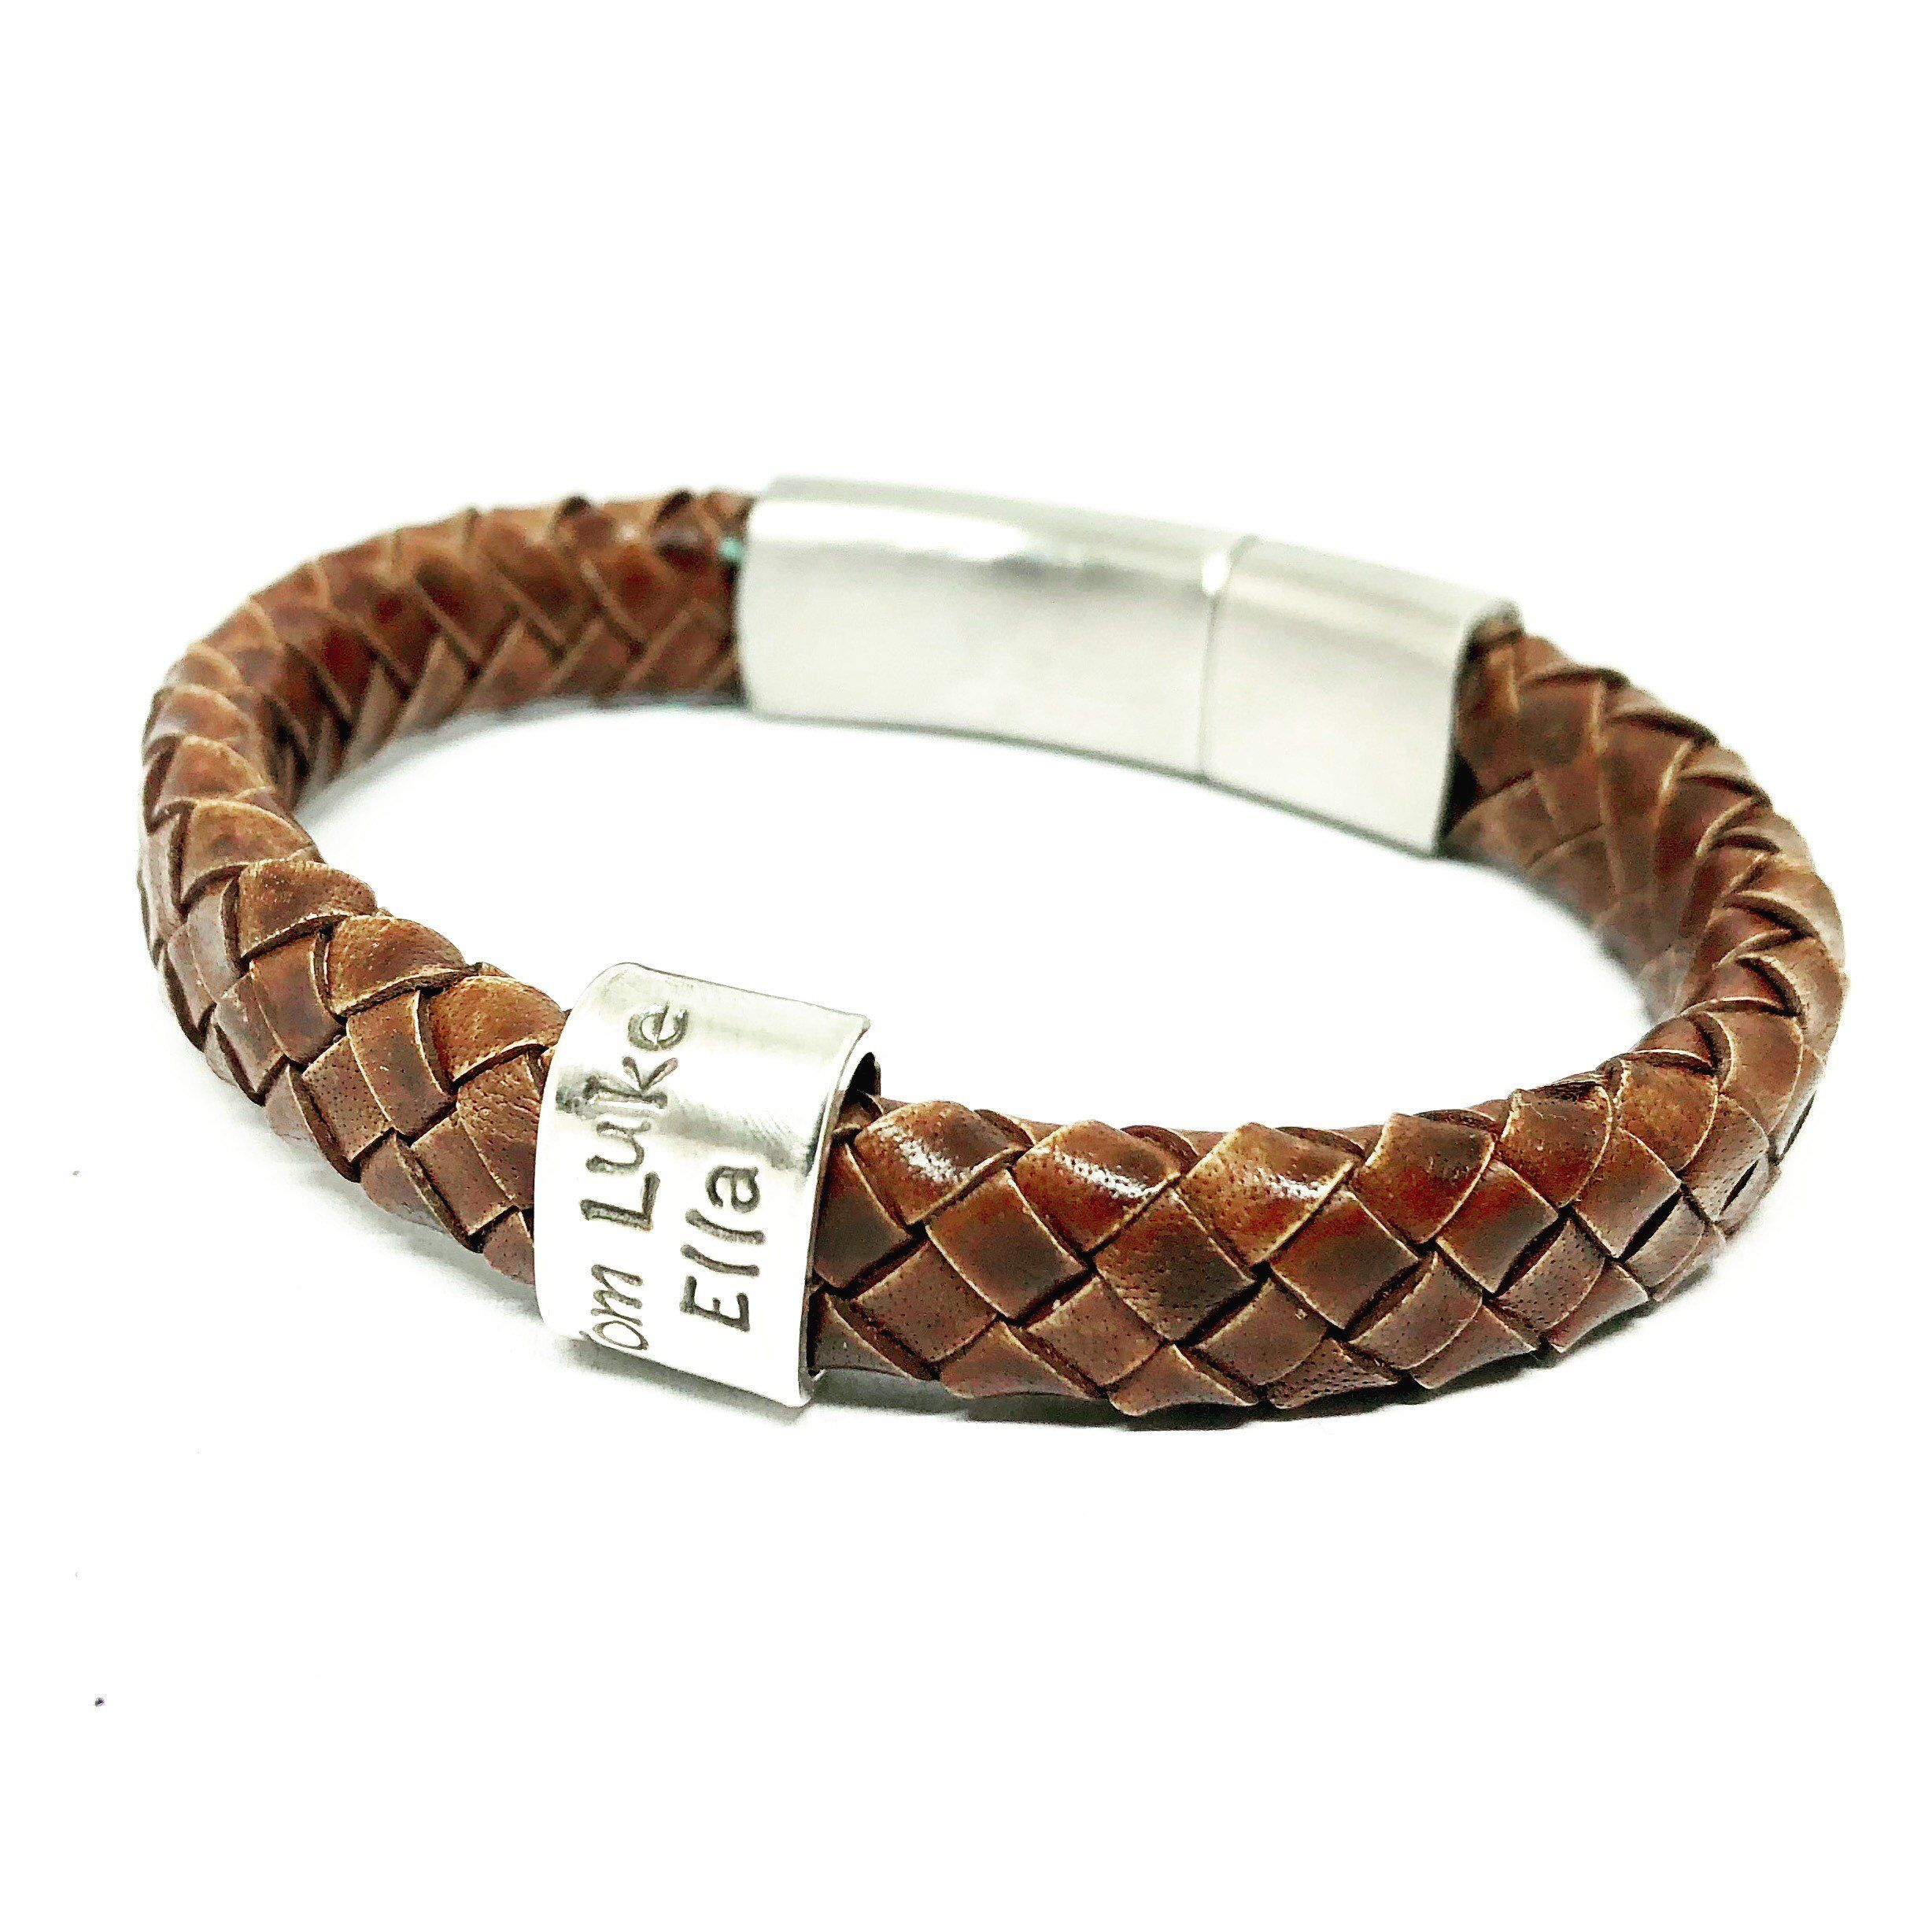 Personalised Braided Leather Bracelet Flat Leather Cuff Mens Etsy Braided Leather Bracelet Golf Gifts For Men Leather Bracelet